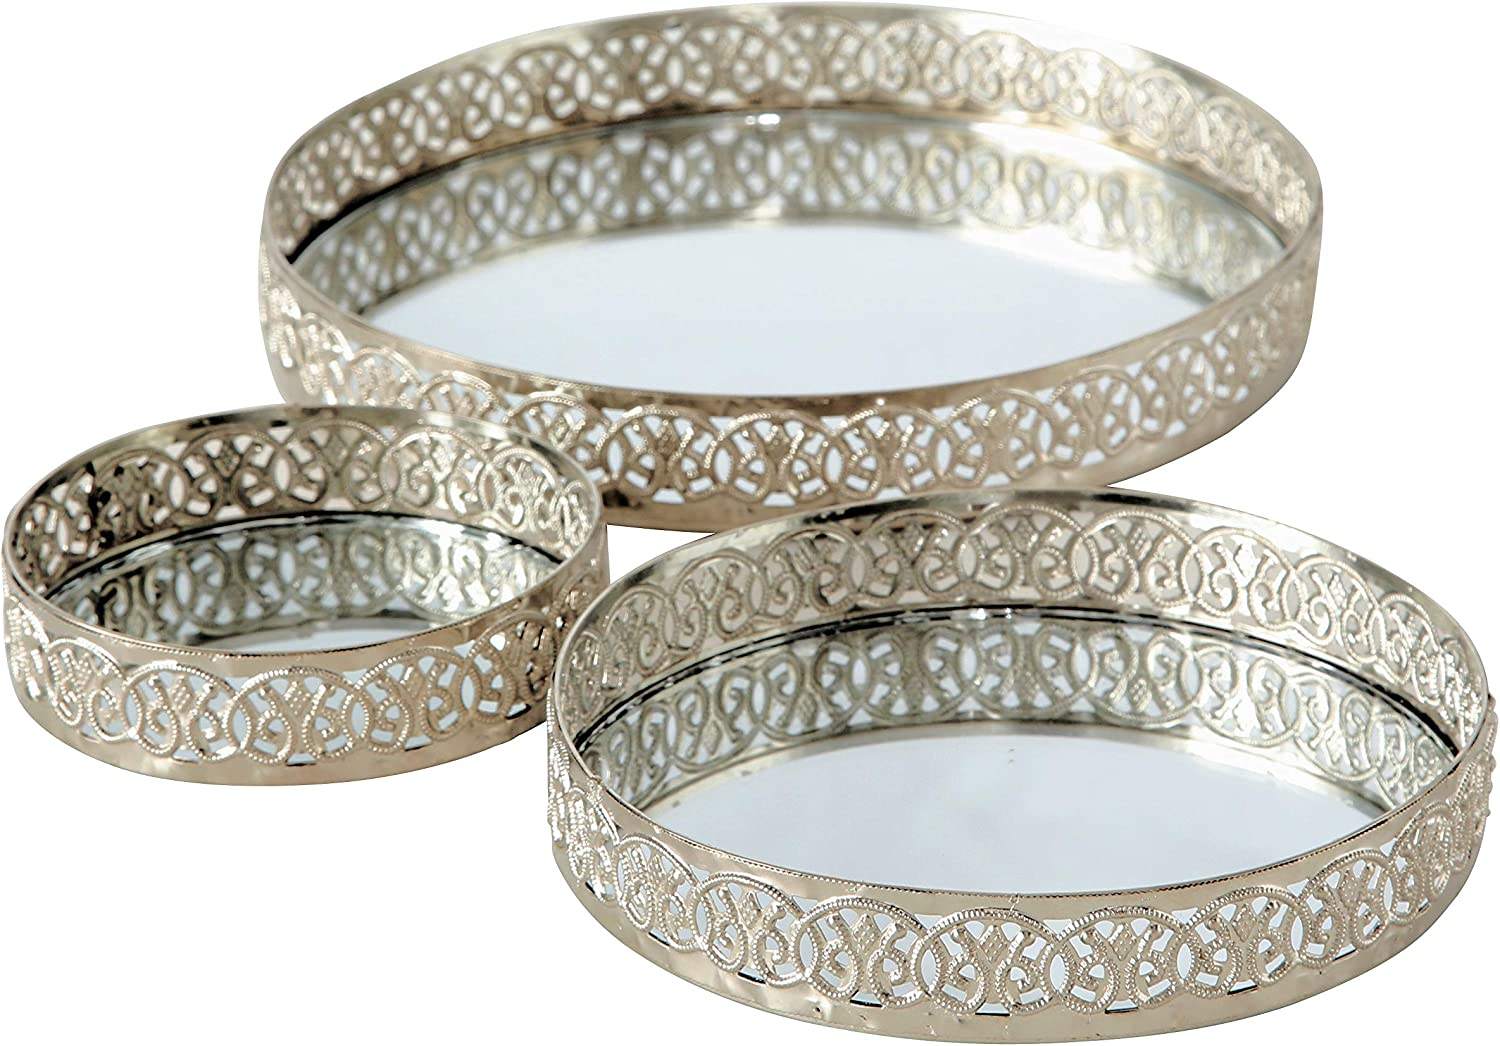 Whw Whole House Worlds Farmers Market Table Top Candle Trays Set Of 3 Iron Lattice Edges Inset Mirror Floor 8 6 4 Inches Diameter Padded Bottoms Home Kitchen